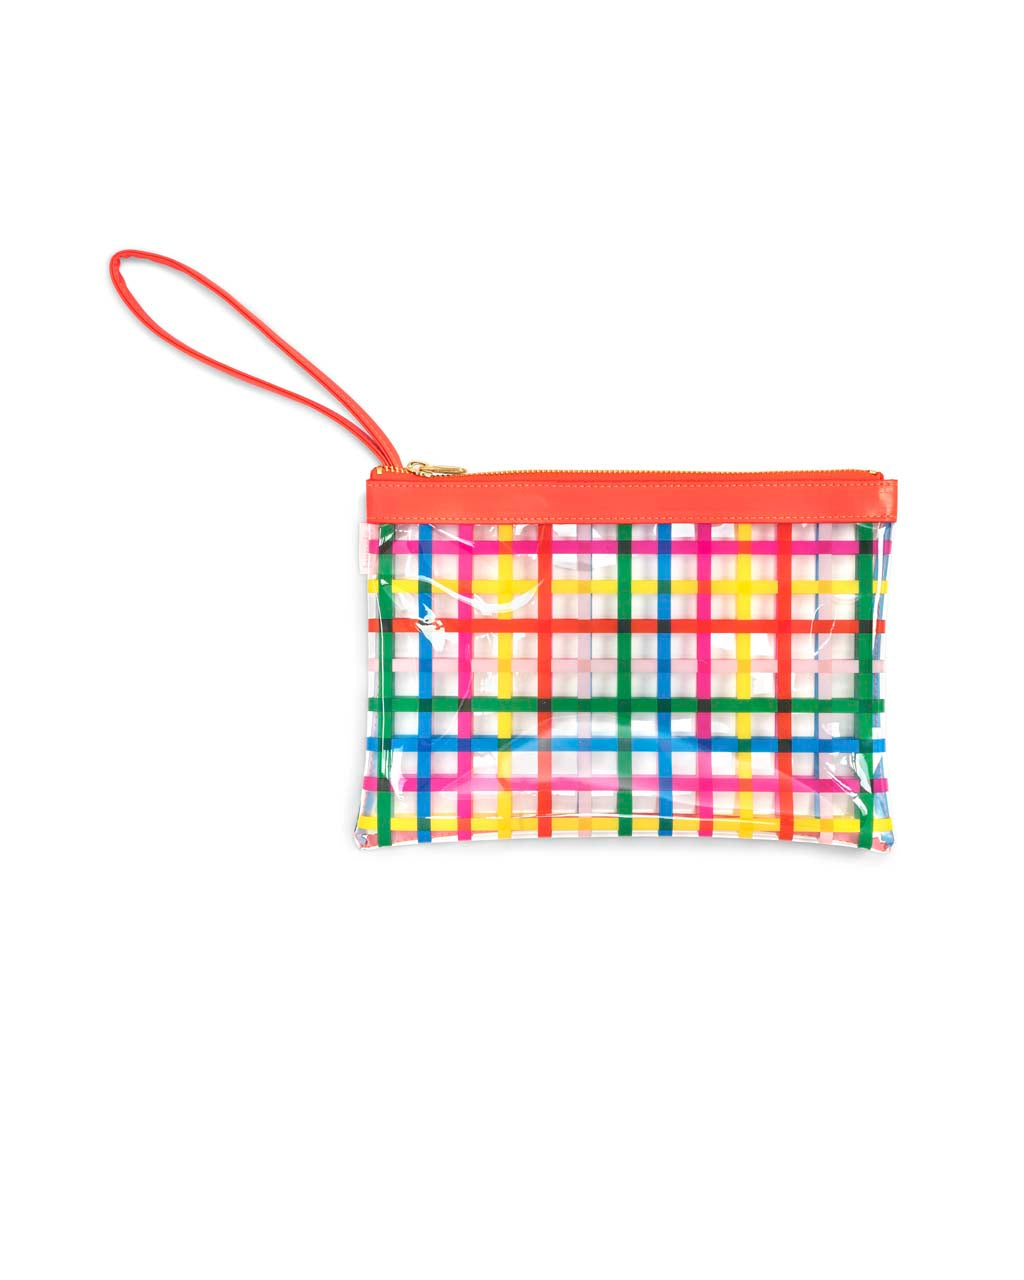 Get It Together Wristlet Pouch - Block Party